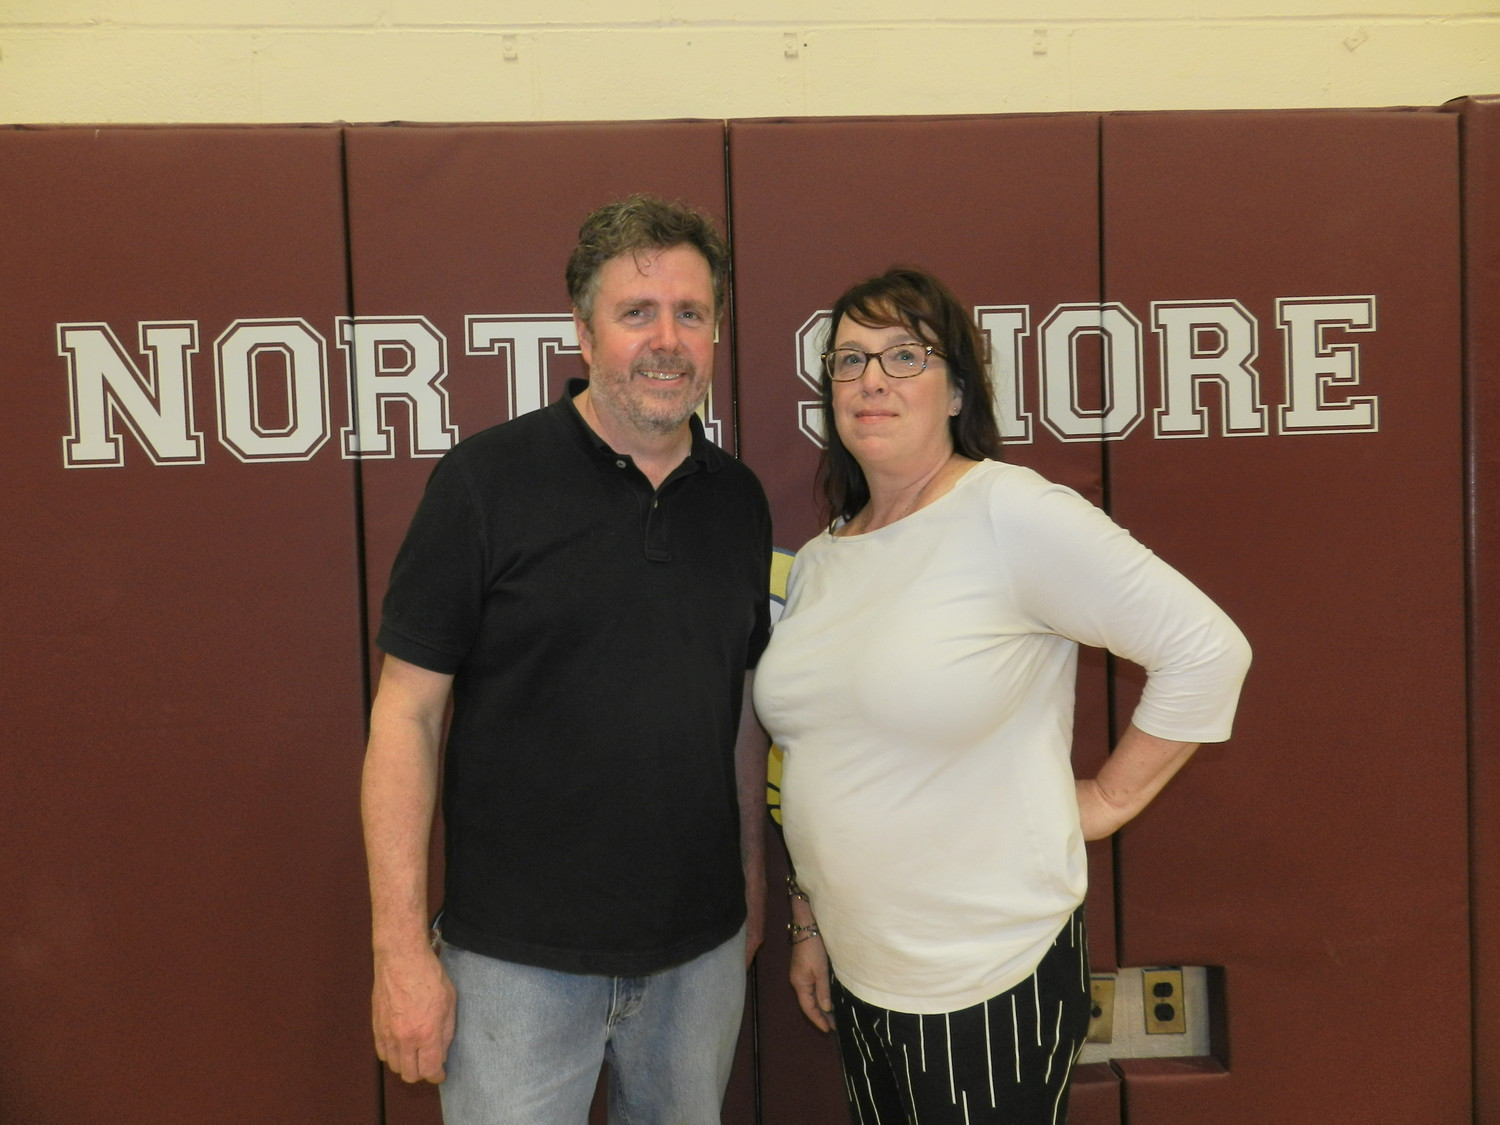 Tim Madden, of Sea Cliff, and Lisa Vizza, of Glen Head, were the winning candidates for the North Shore Board of Education's trustee election.